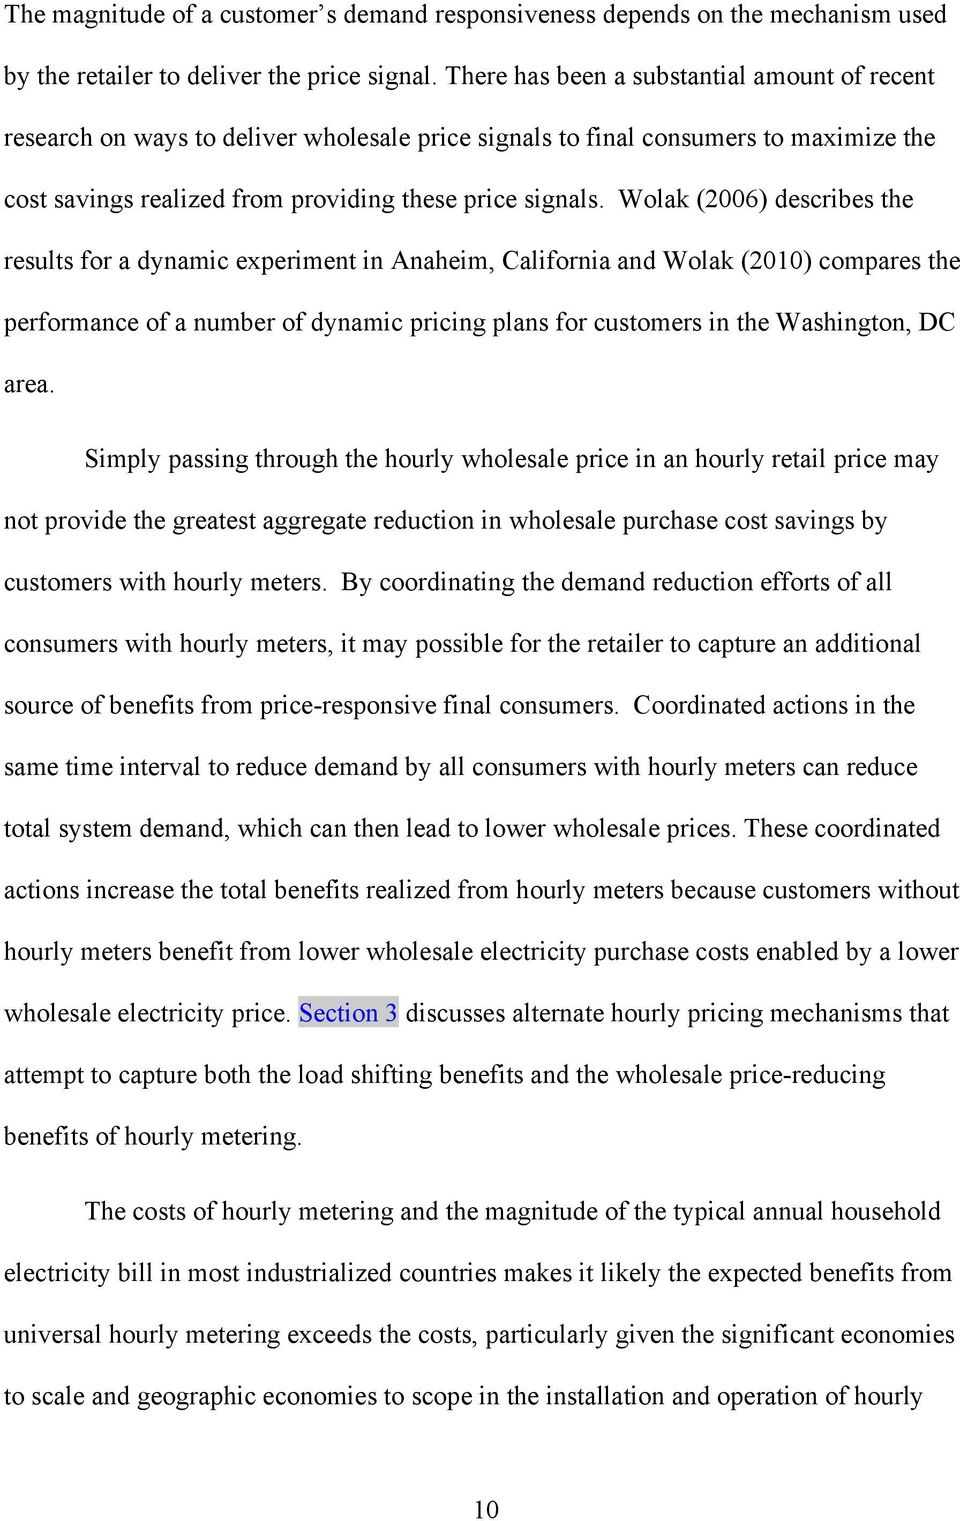 Wolak (2006) describes the results for a dynamic experiment in Anaheim, California and Wolak (2010) compares the performance of a number of dynamic pricing plans for customers in the Washington, DC